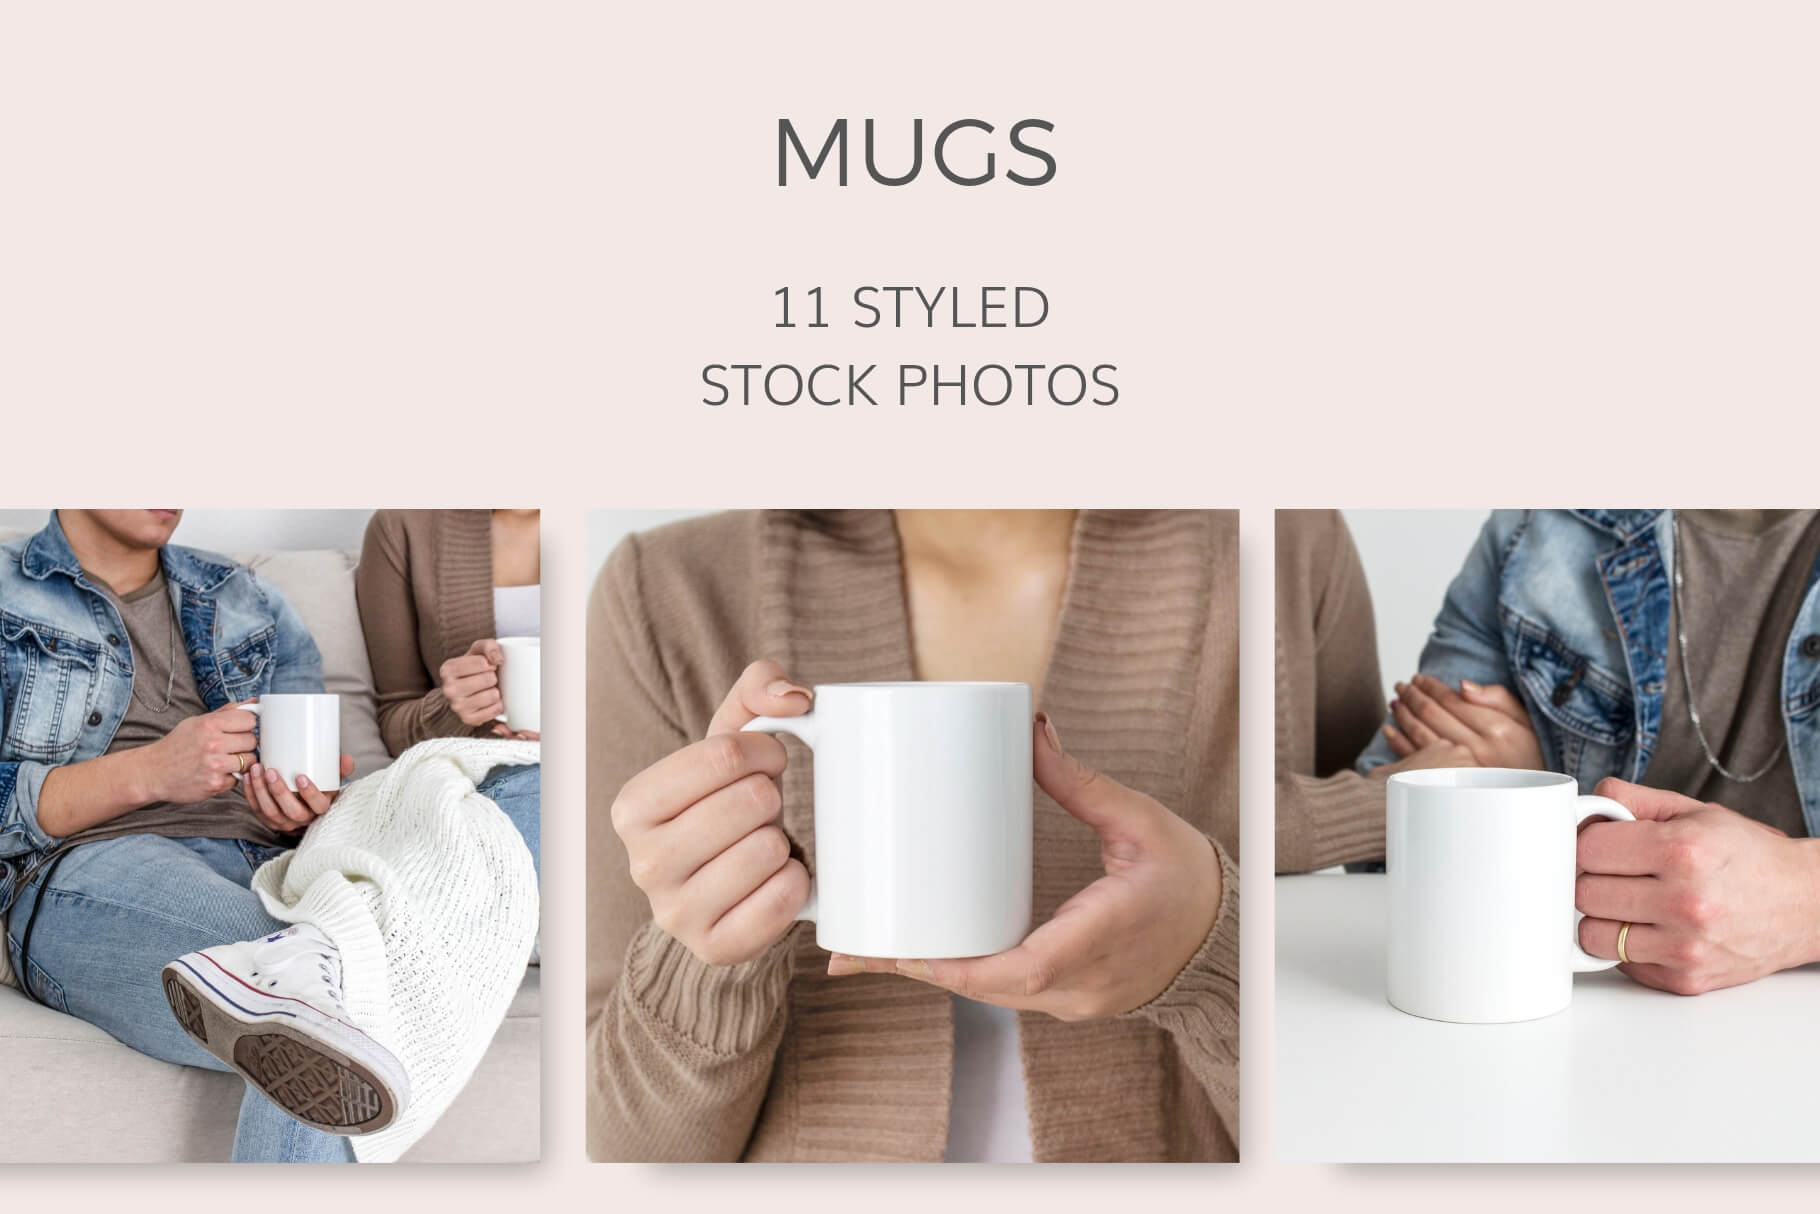 mugs styled stock photo image picture cover